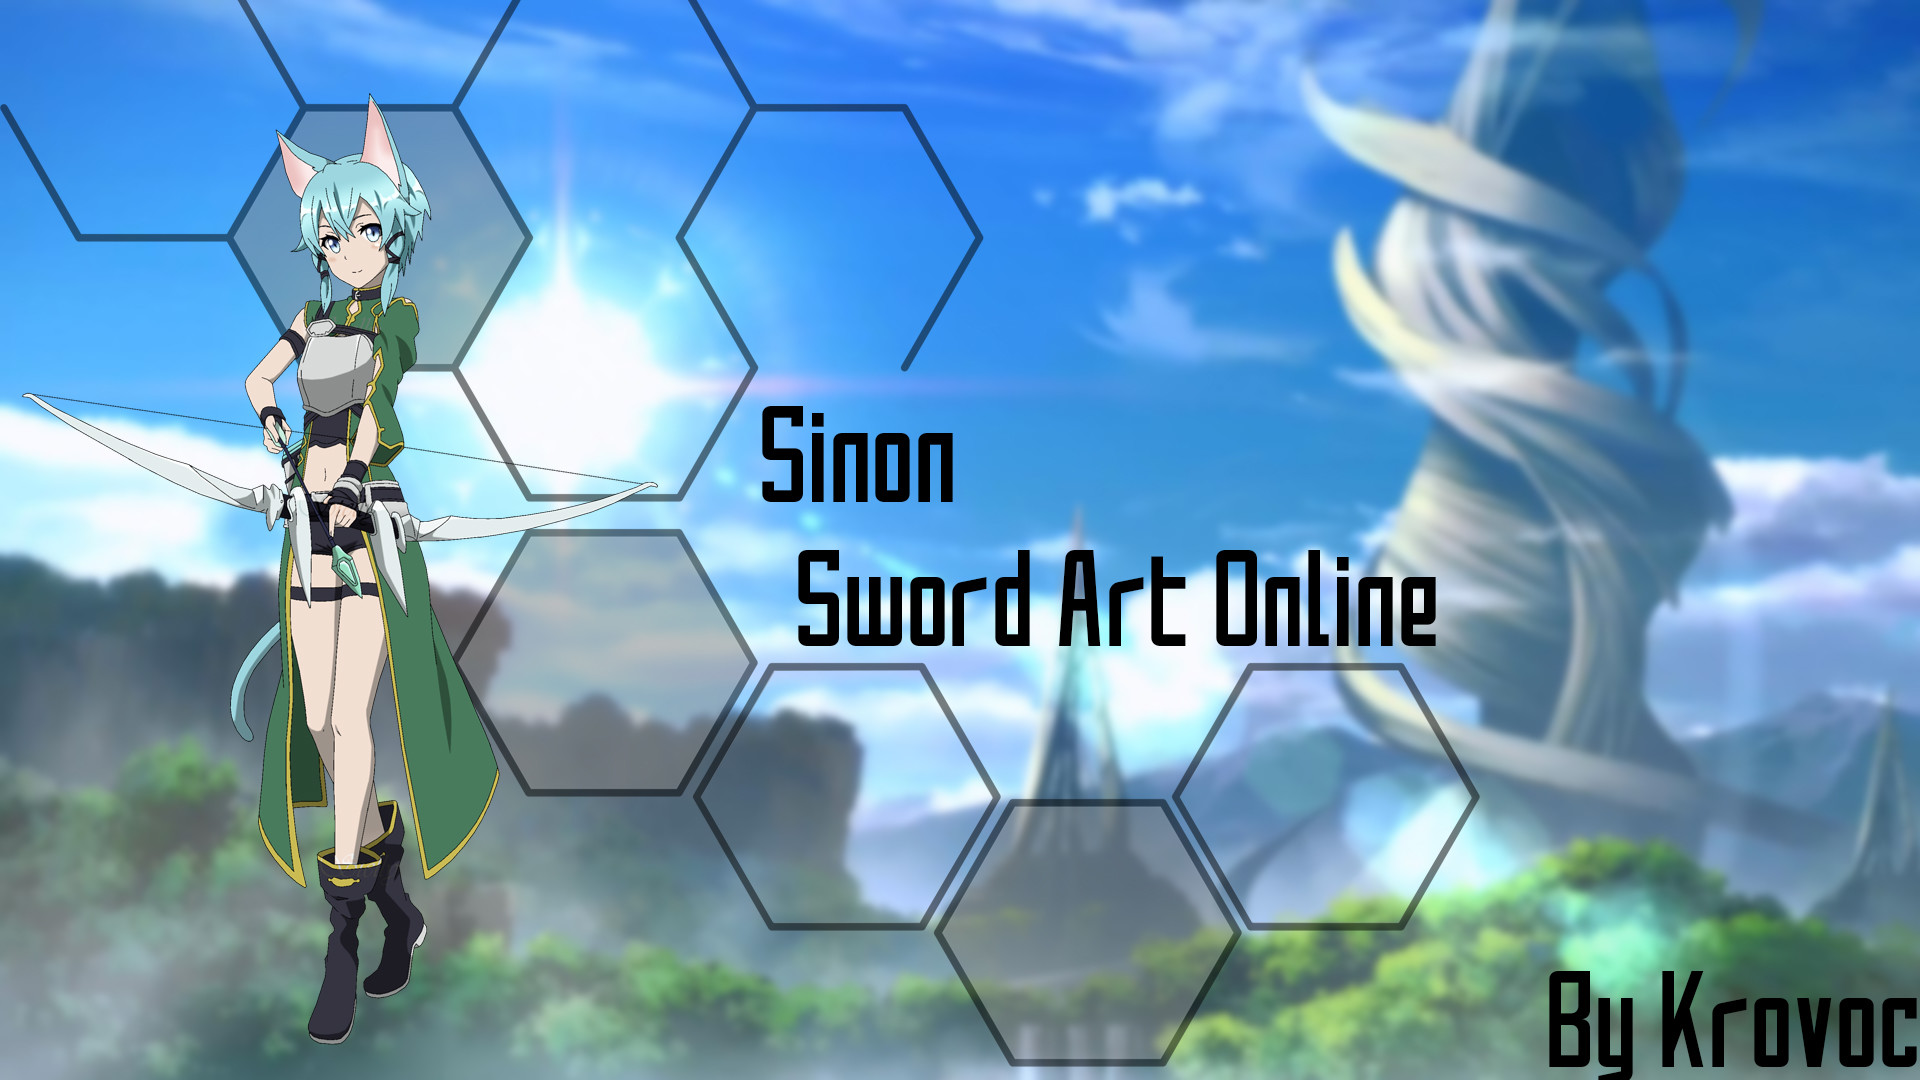 1920x1080 Wallpaper Sinon by Krovoc Wallpaper Sinon by Krovoc